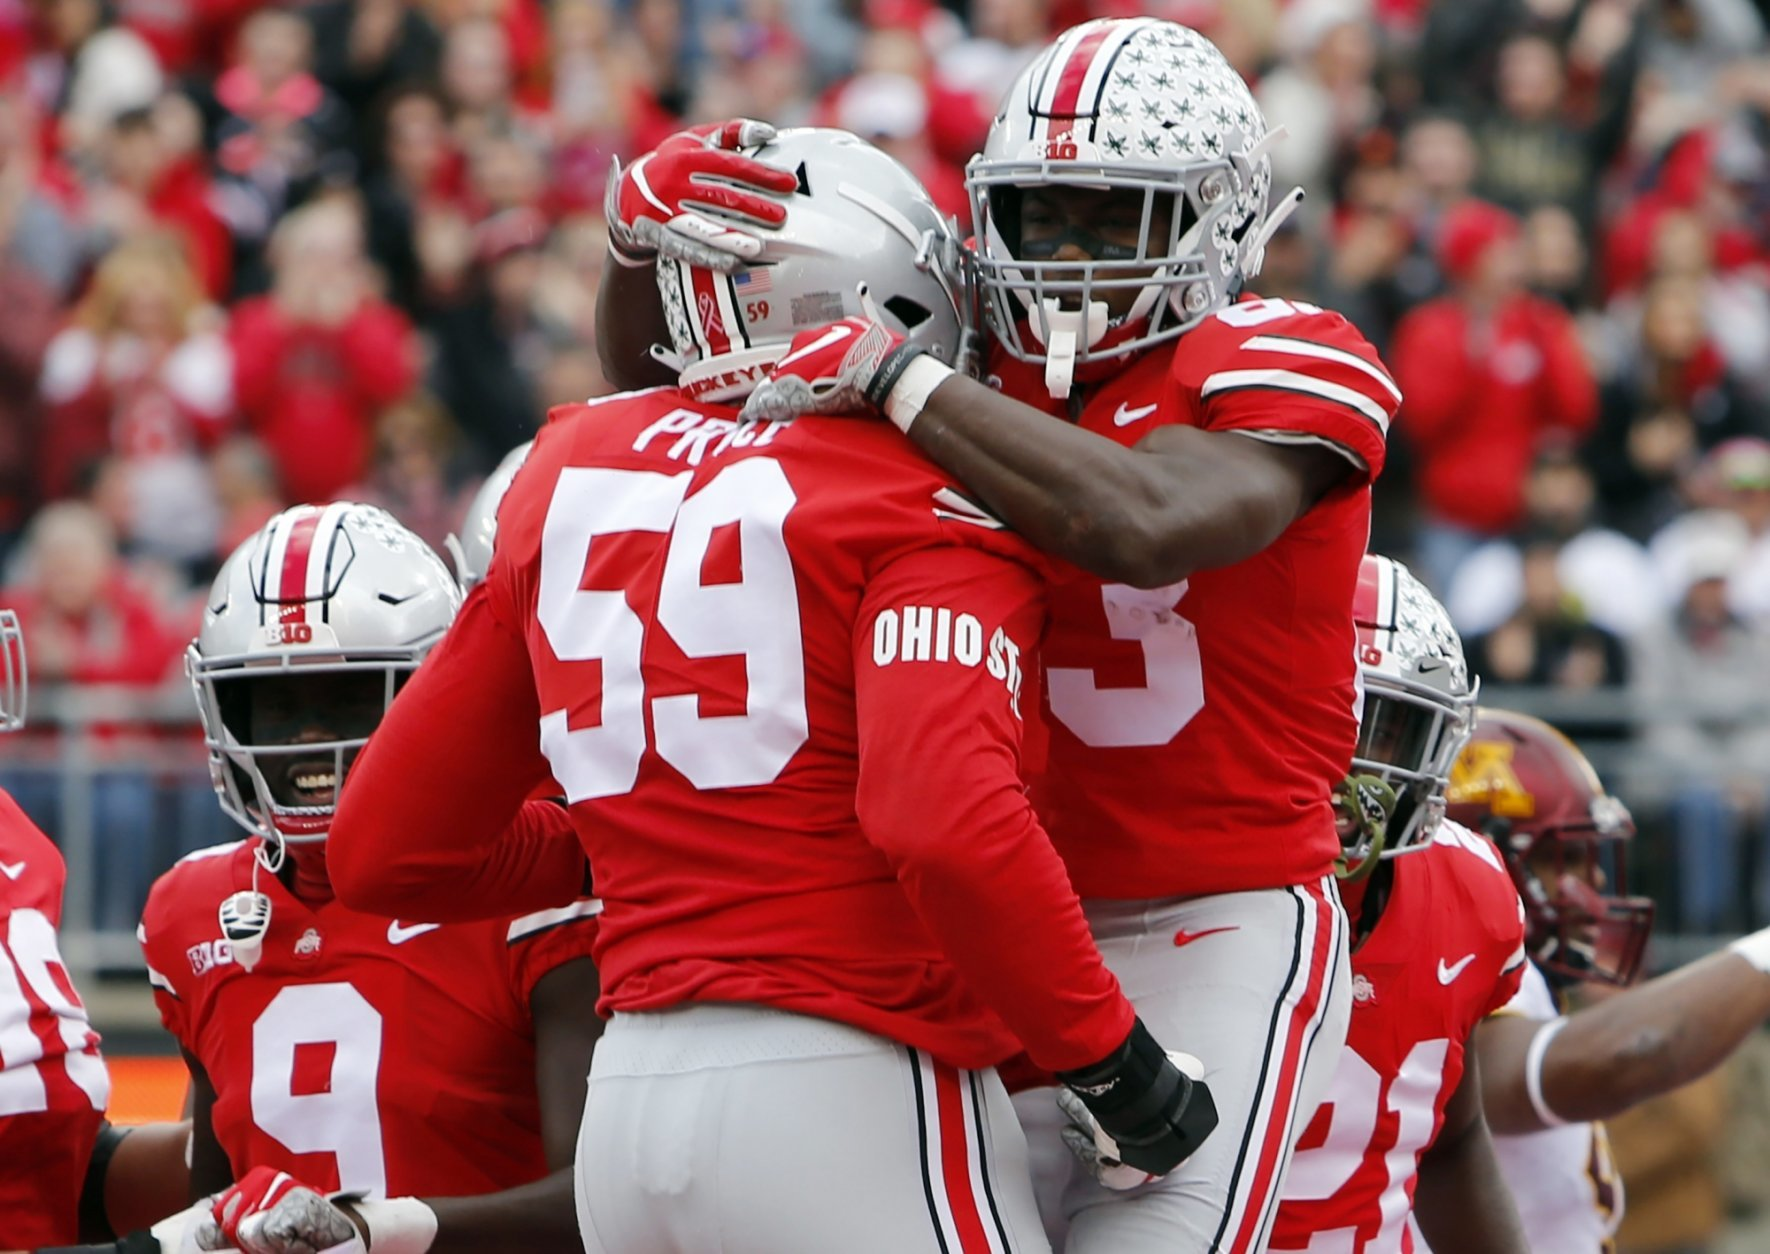 Ohio State receiver Terry McLaurin, right, celebrates his touchdown against Minnesota with teammate Isaiah Prince during the first half of an NCAA college football game Saturday, Oct. 13, 2018, in Columbus, Ohio. (AP Photo/Jay LaPrete)